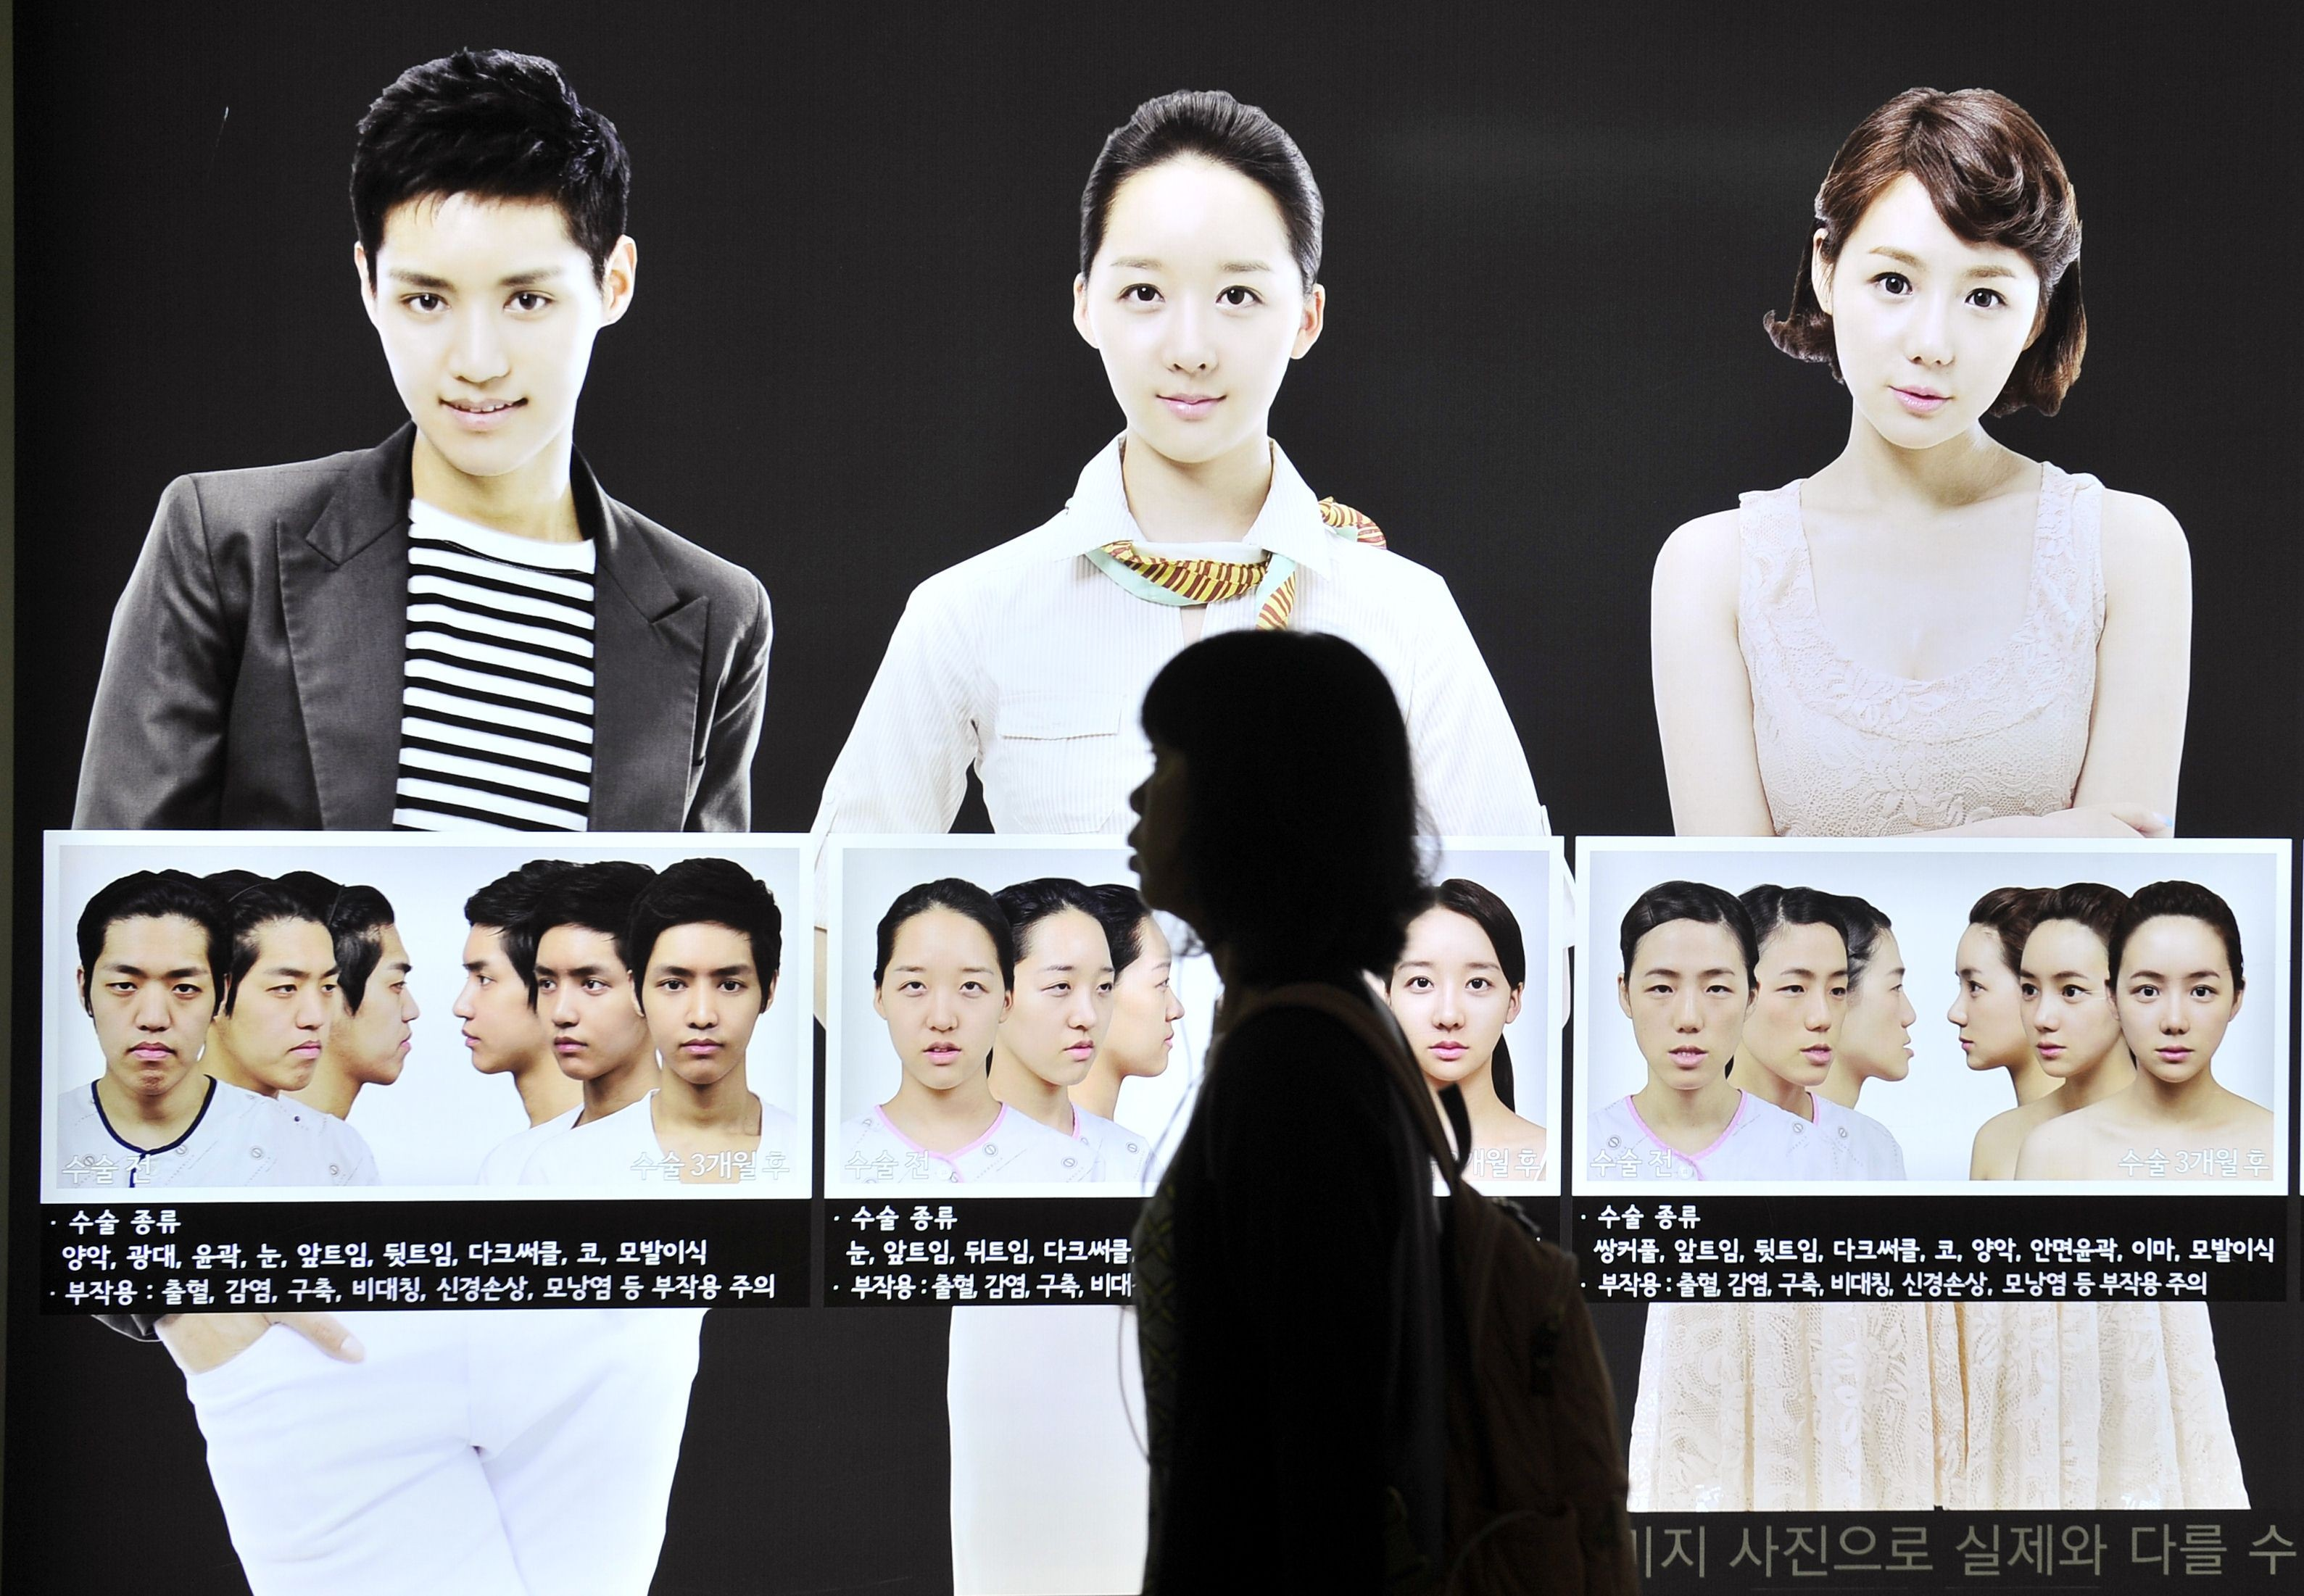 This social network is where China's plastic surgery fans share